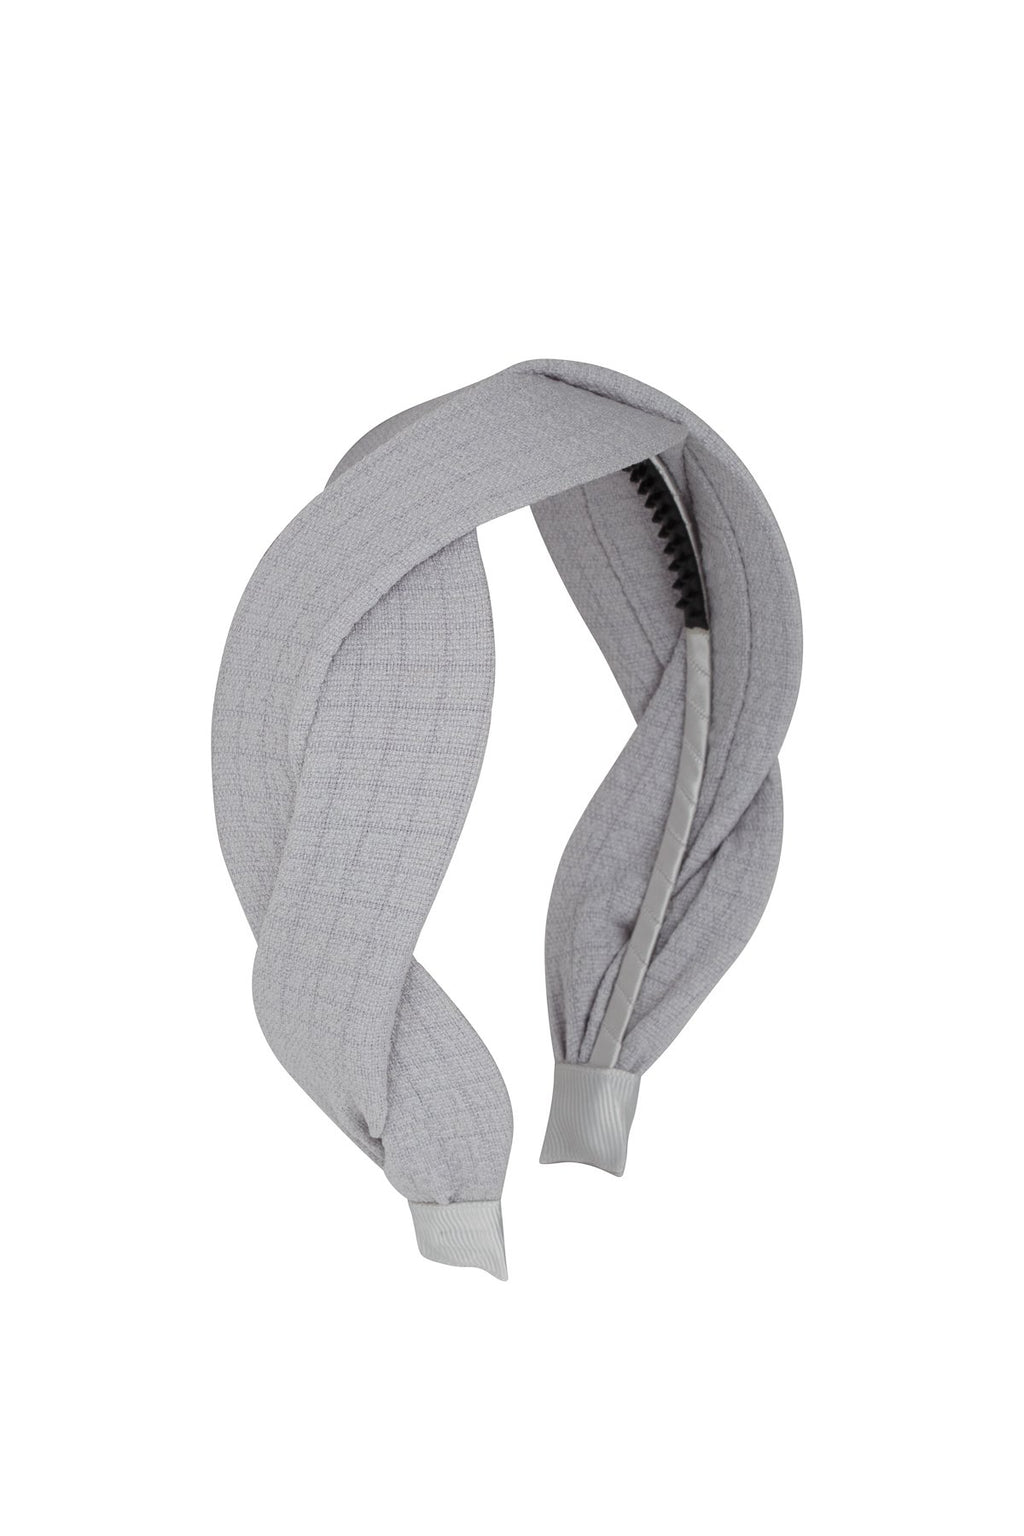 Octagon Headband - Light Grey - PROJECT 6, modest fashion